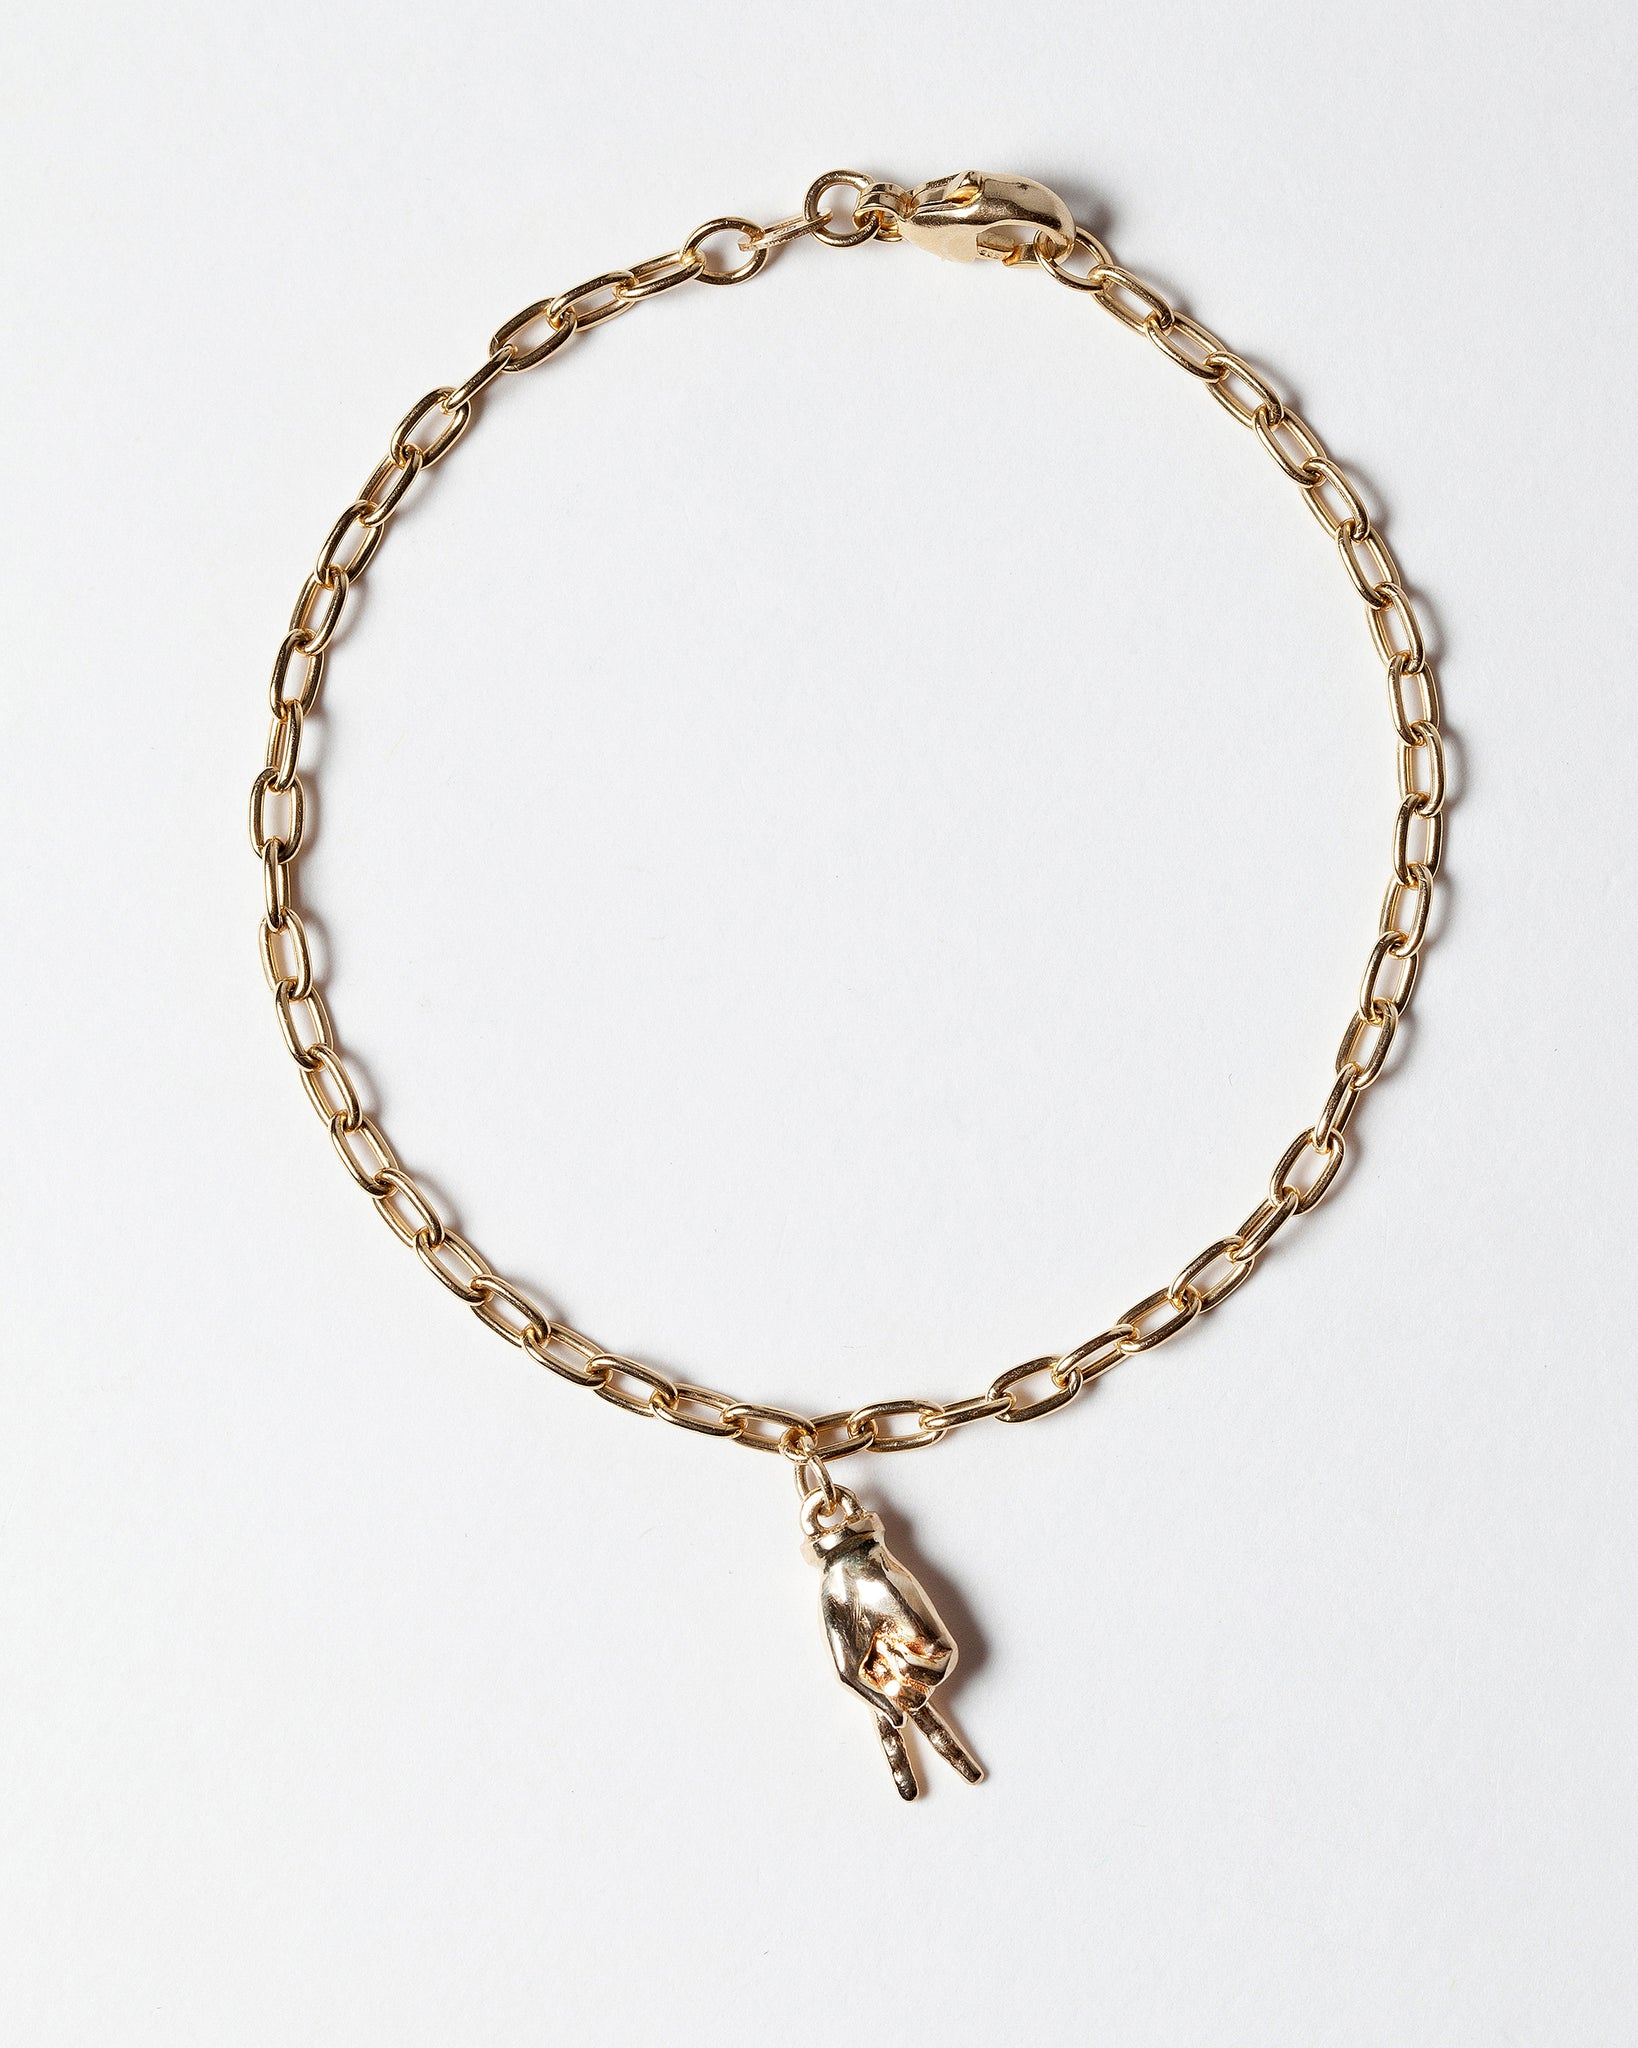 Sign Language Letter V Charm on Chain Bracelet